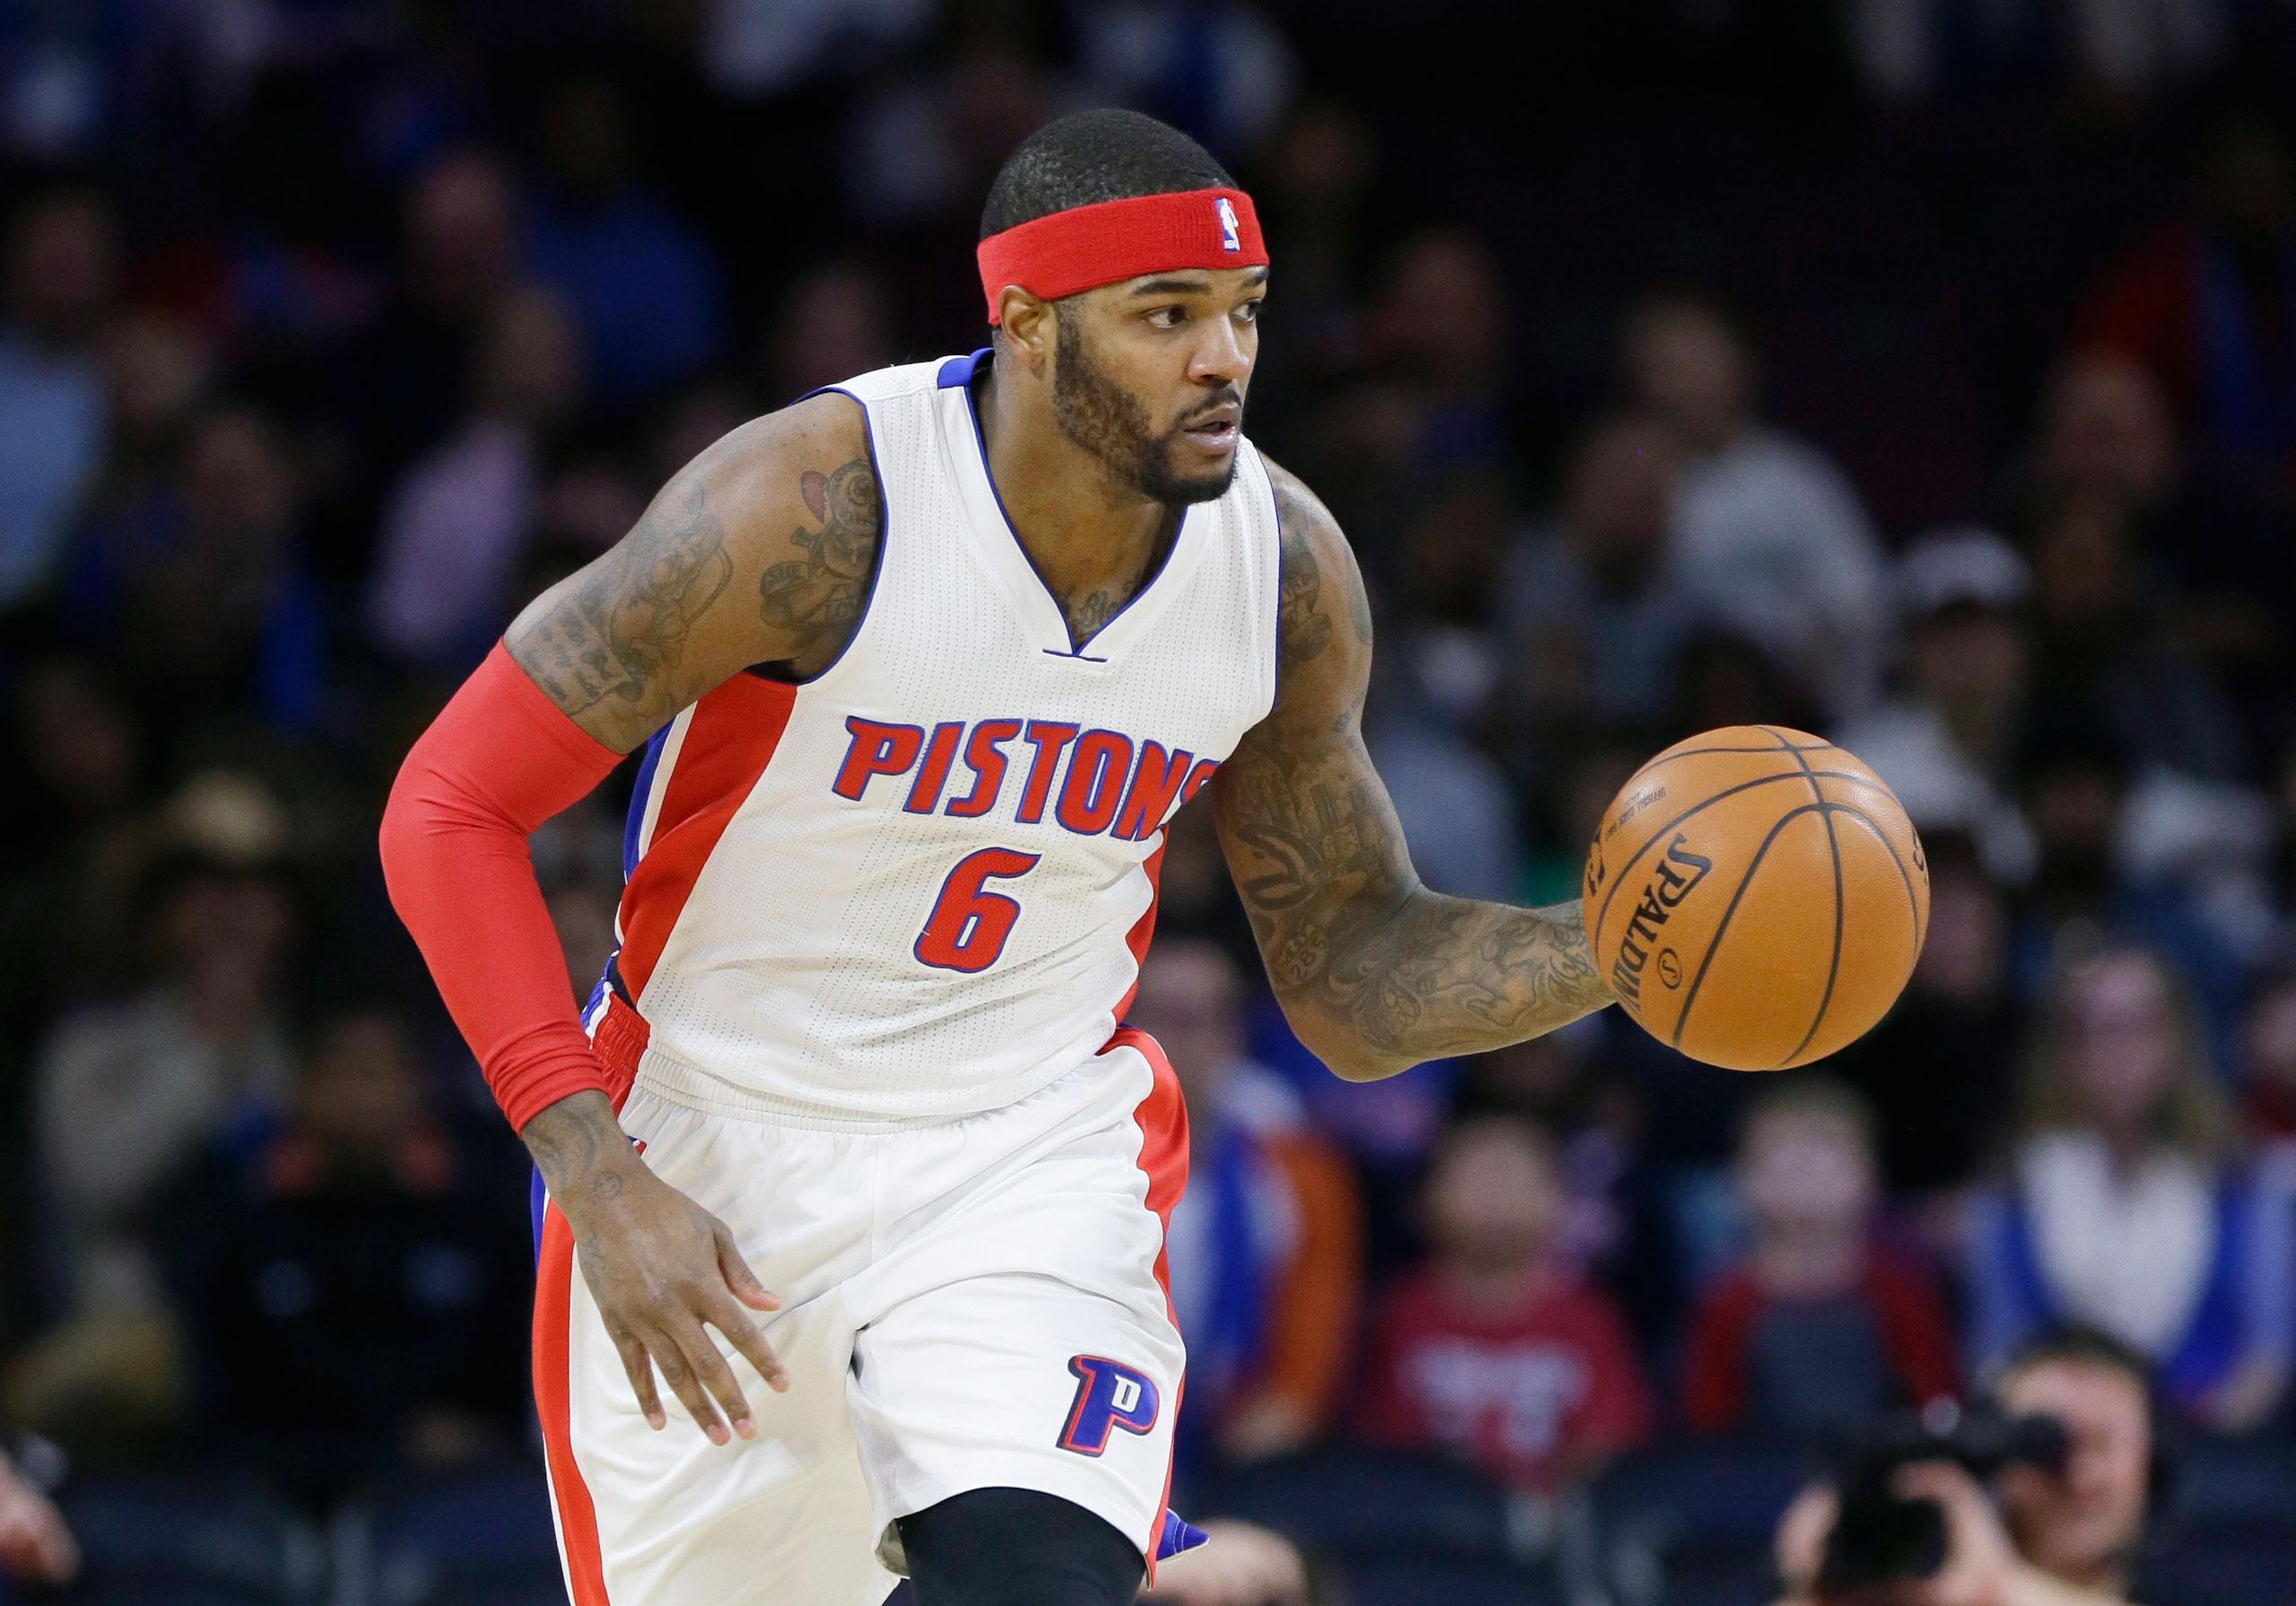 Former Detroit Pistons forward Josh Smith during the first half of an NBA basketball game against the Philadelphia 76ers in Auburn Hills, Mich., on Dec. 6, 2014.